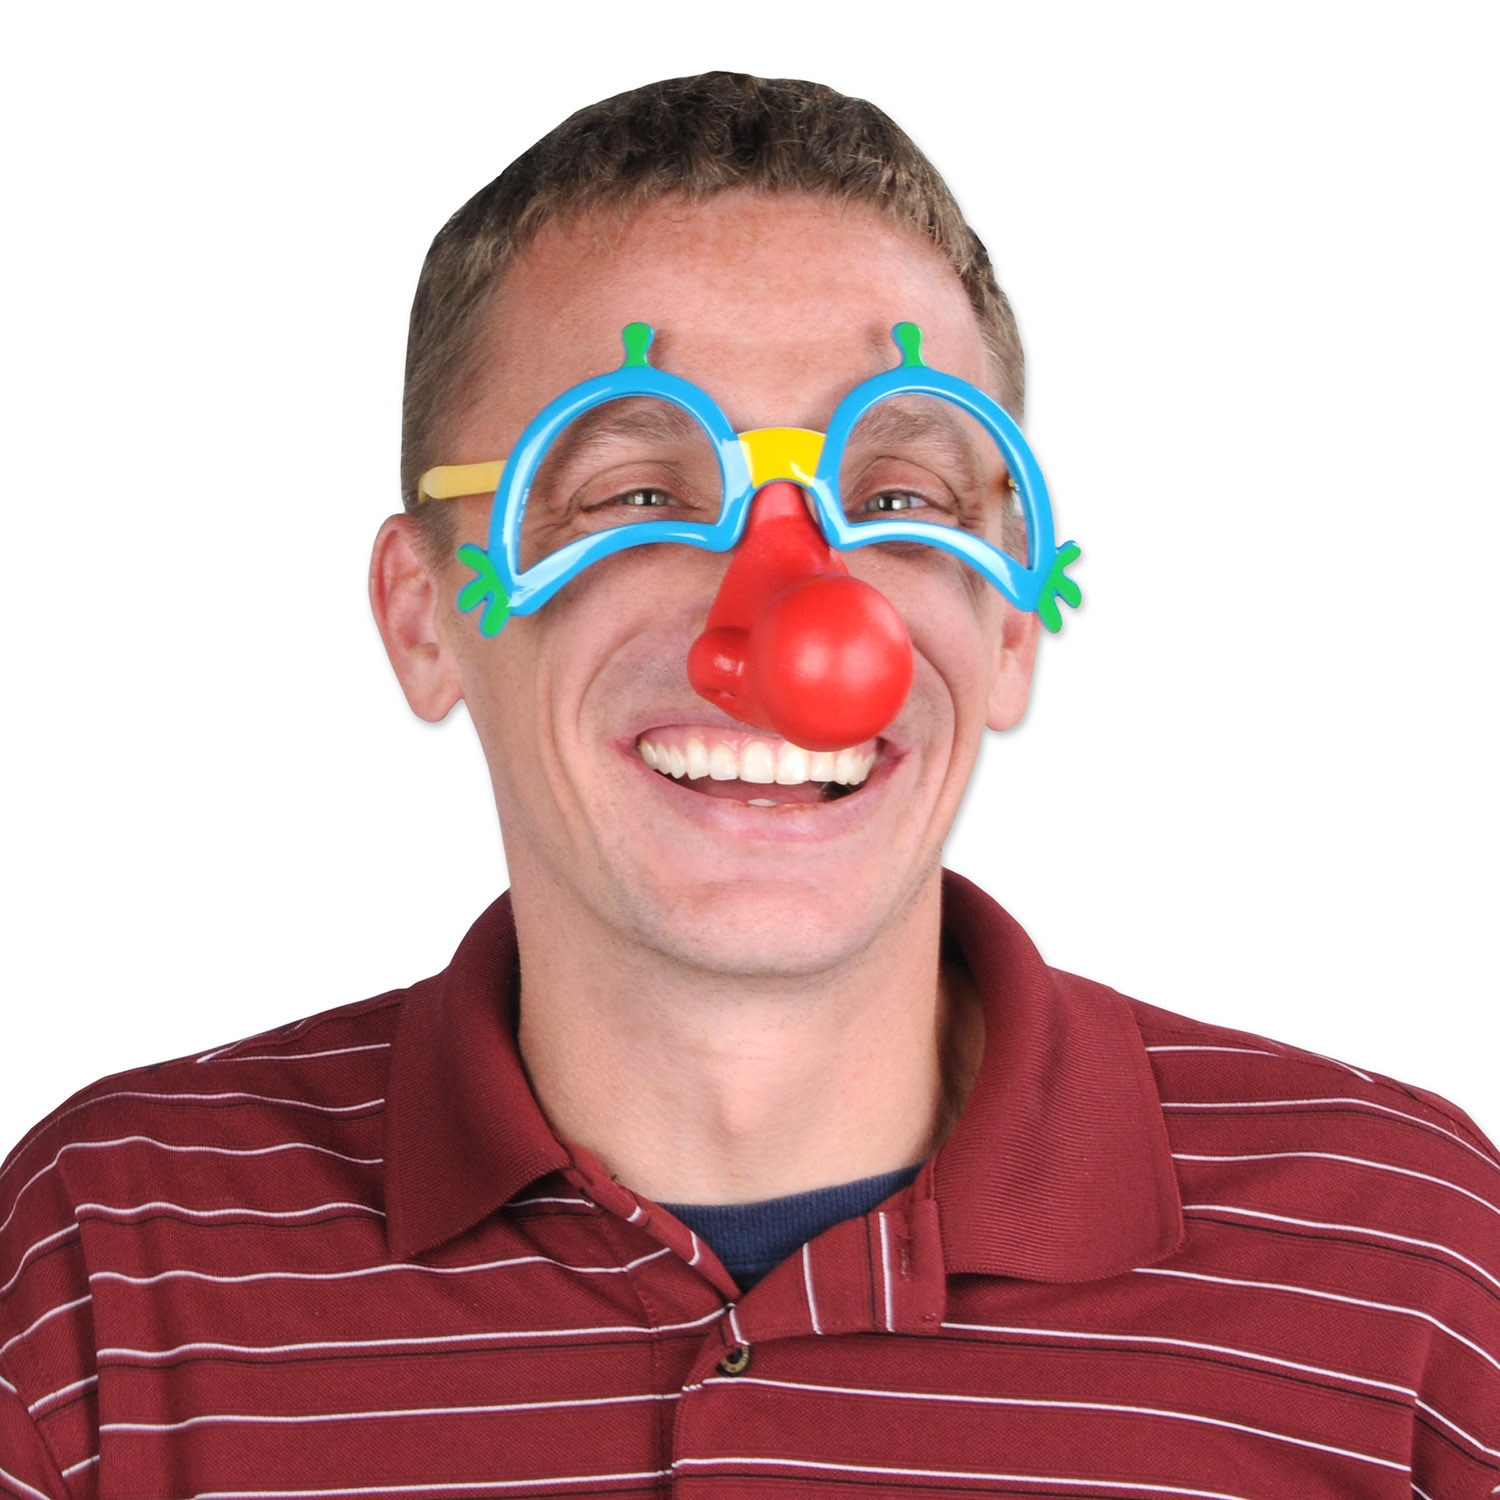 Clown Glasses with Nose (Pack of 6) Clown Glasses, Clown Nose, Circus favors, Circus ideas, Cheap party supplies, Wholesale party goods, Inexpensive favors, Party favors, Halloween supplies